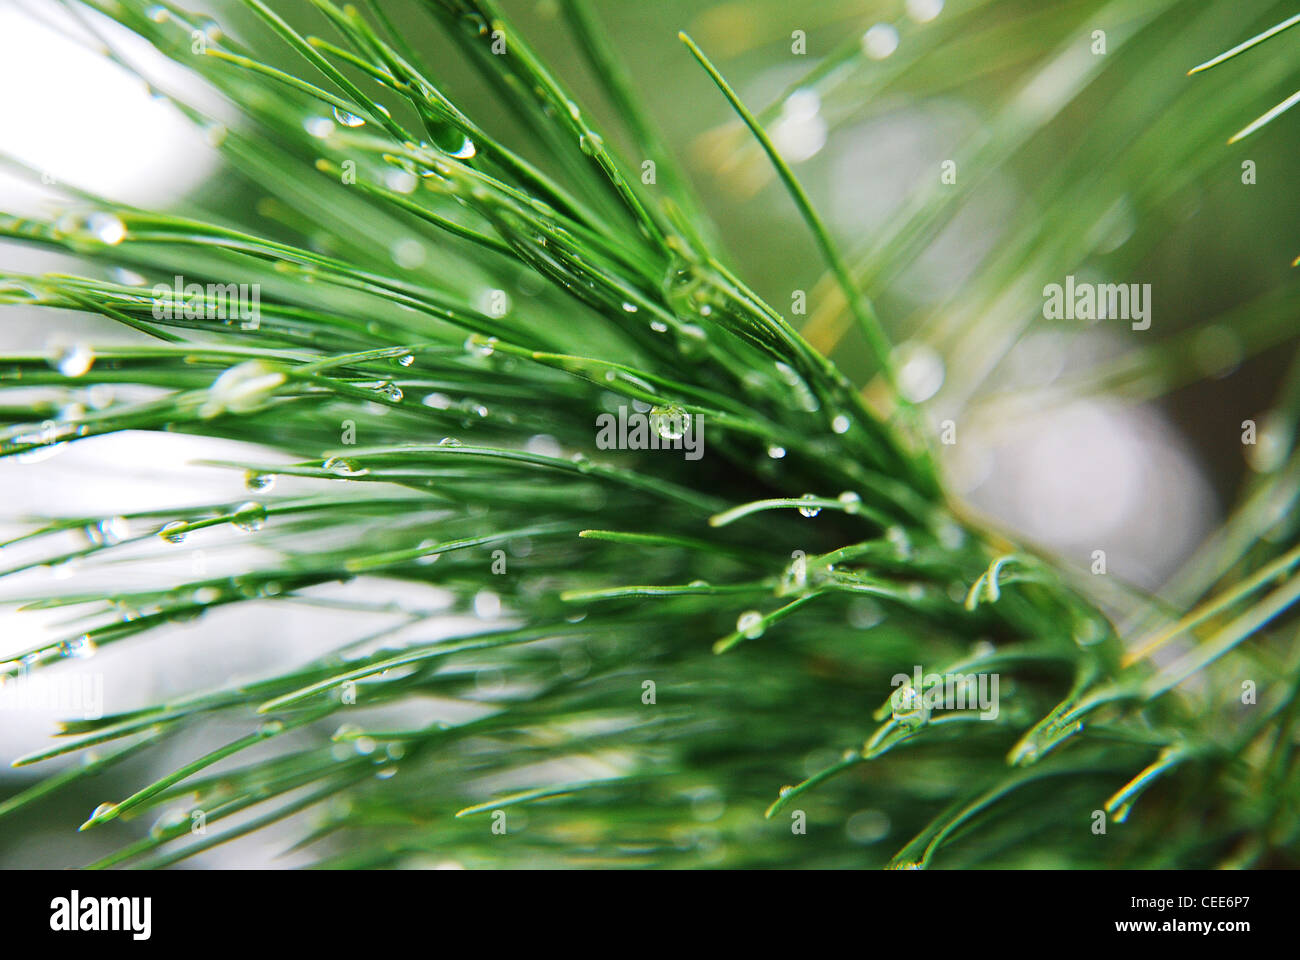 pine,tree,needle,drops,macro,rain,green,fir,flora,park - Stock Image